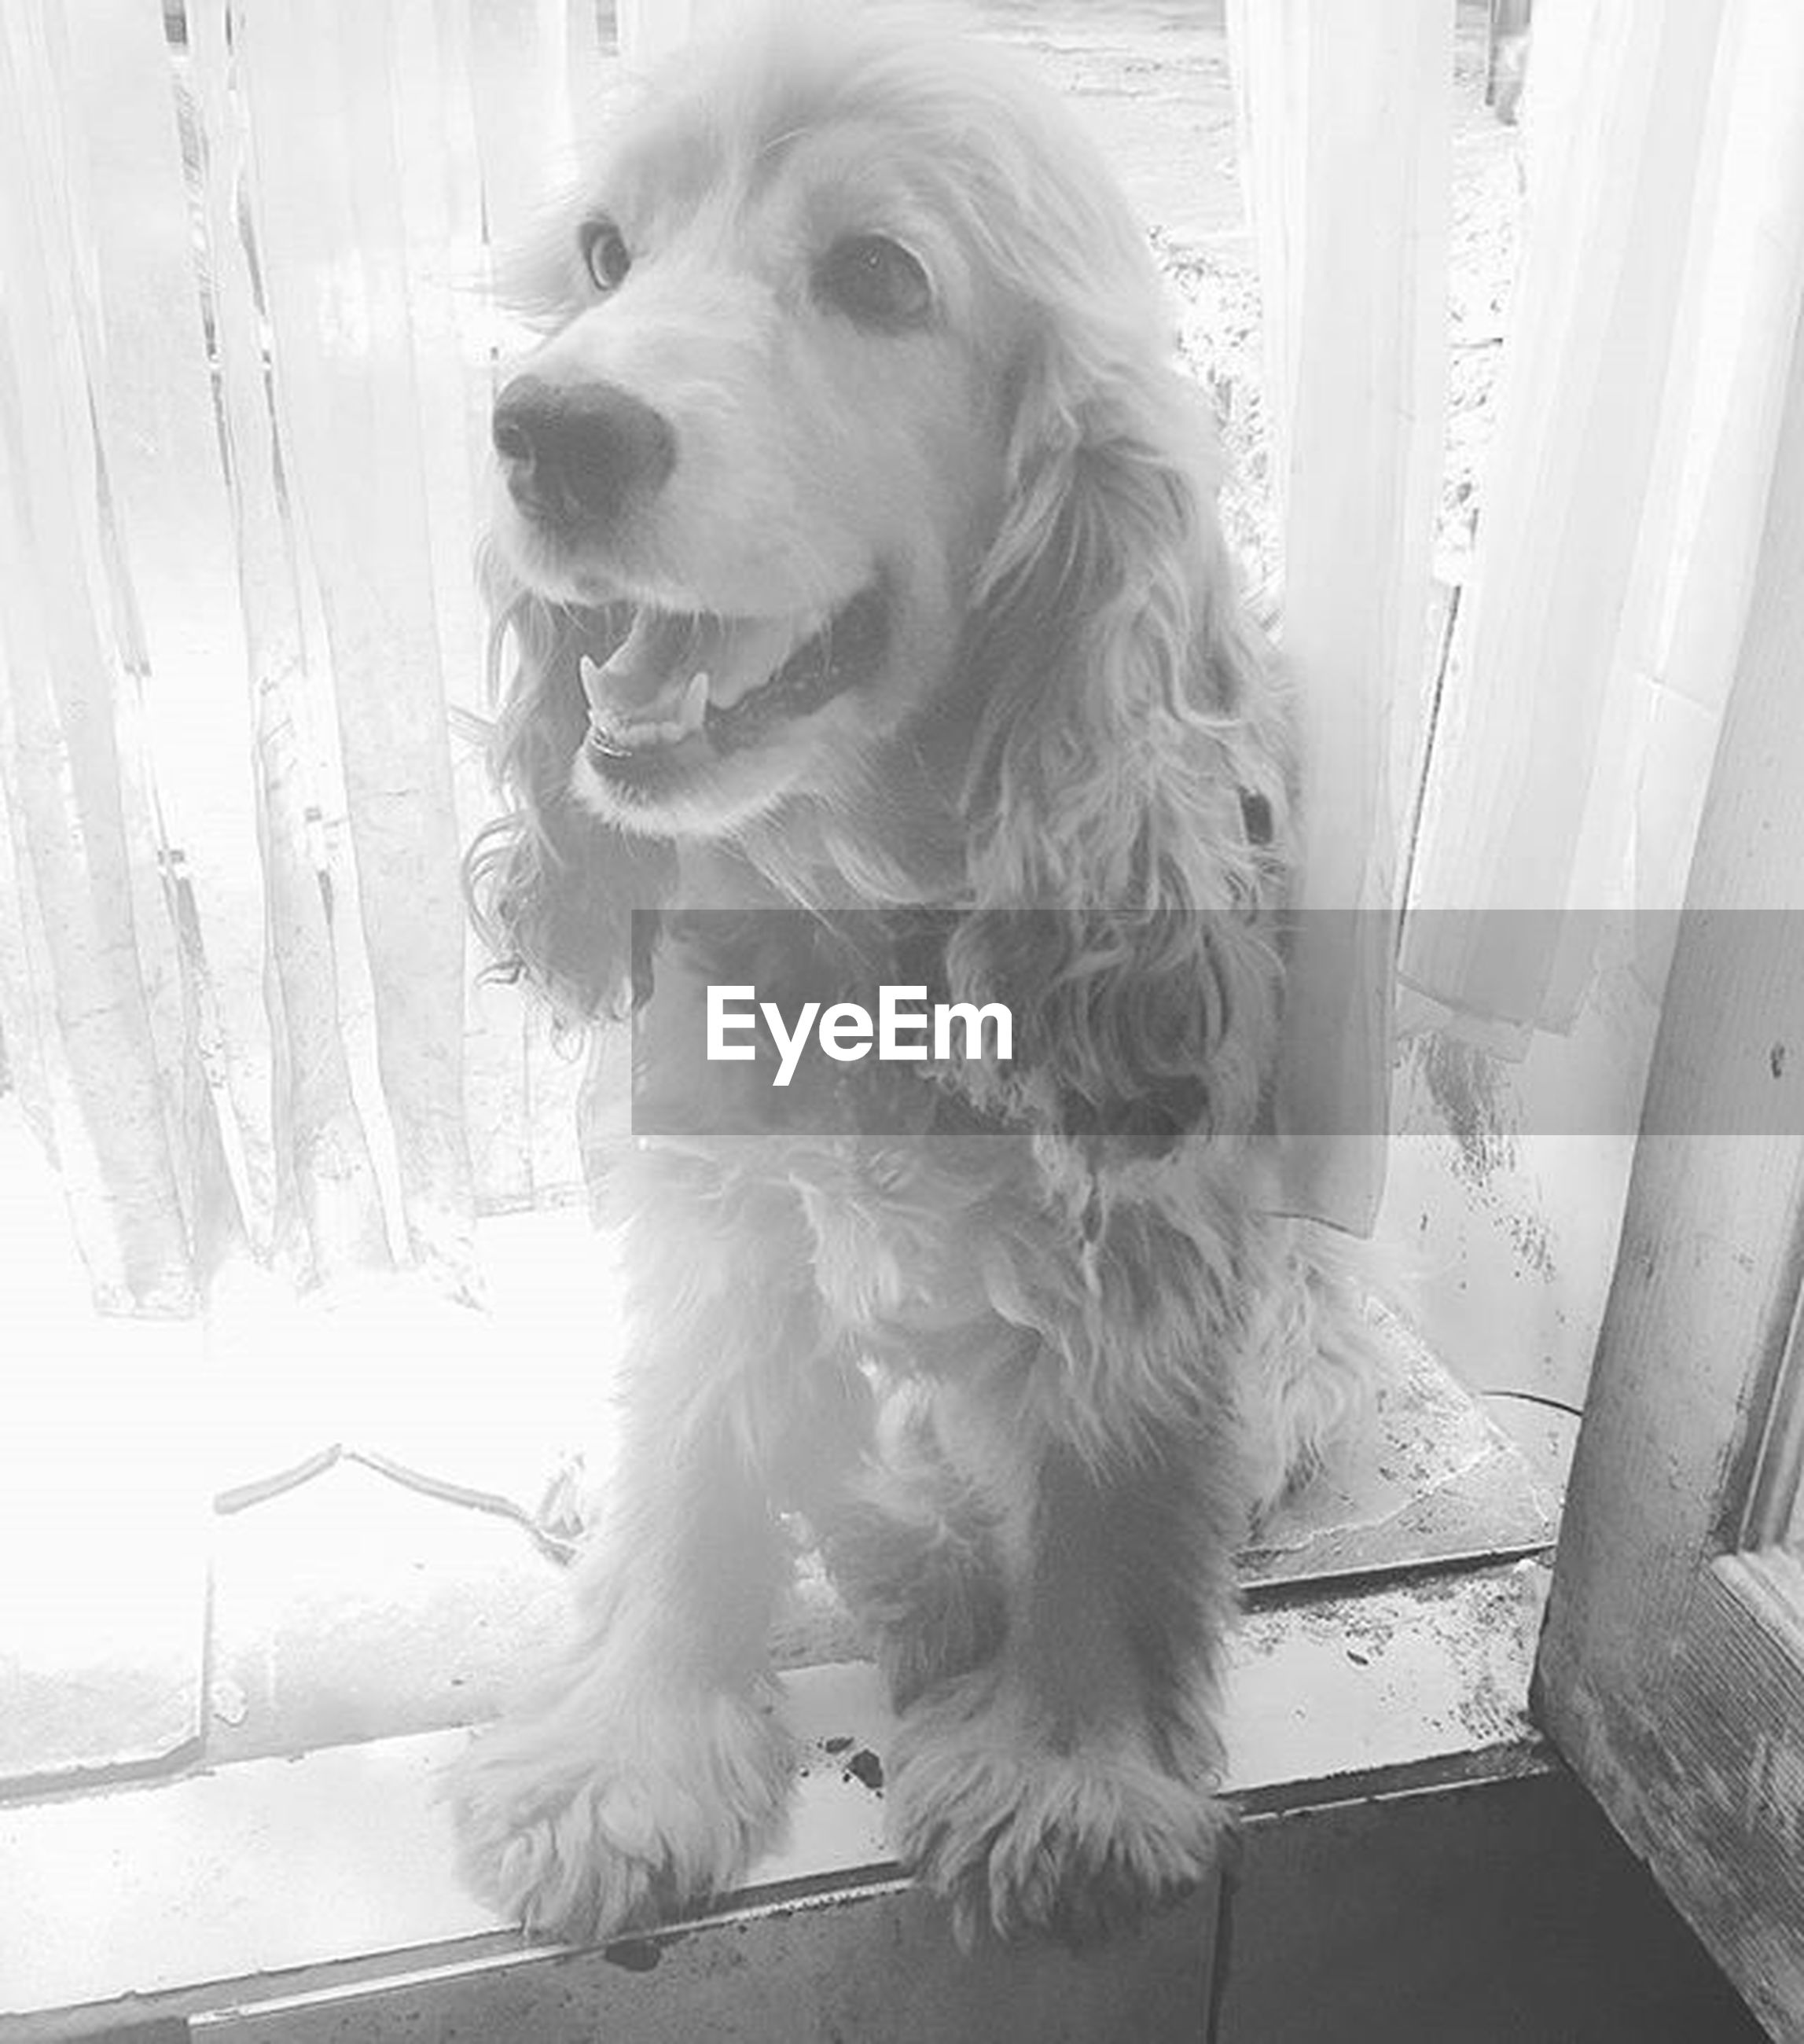 pets, domestic animals, dog, one animal, mammal, animal themes, indoors, animal hair, sitting, home interior, looking away, full length, pampered pets, relaxation, cute, loyalty, window, day, sunlight, portrait